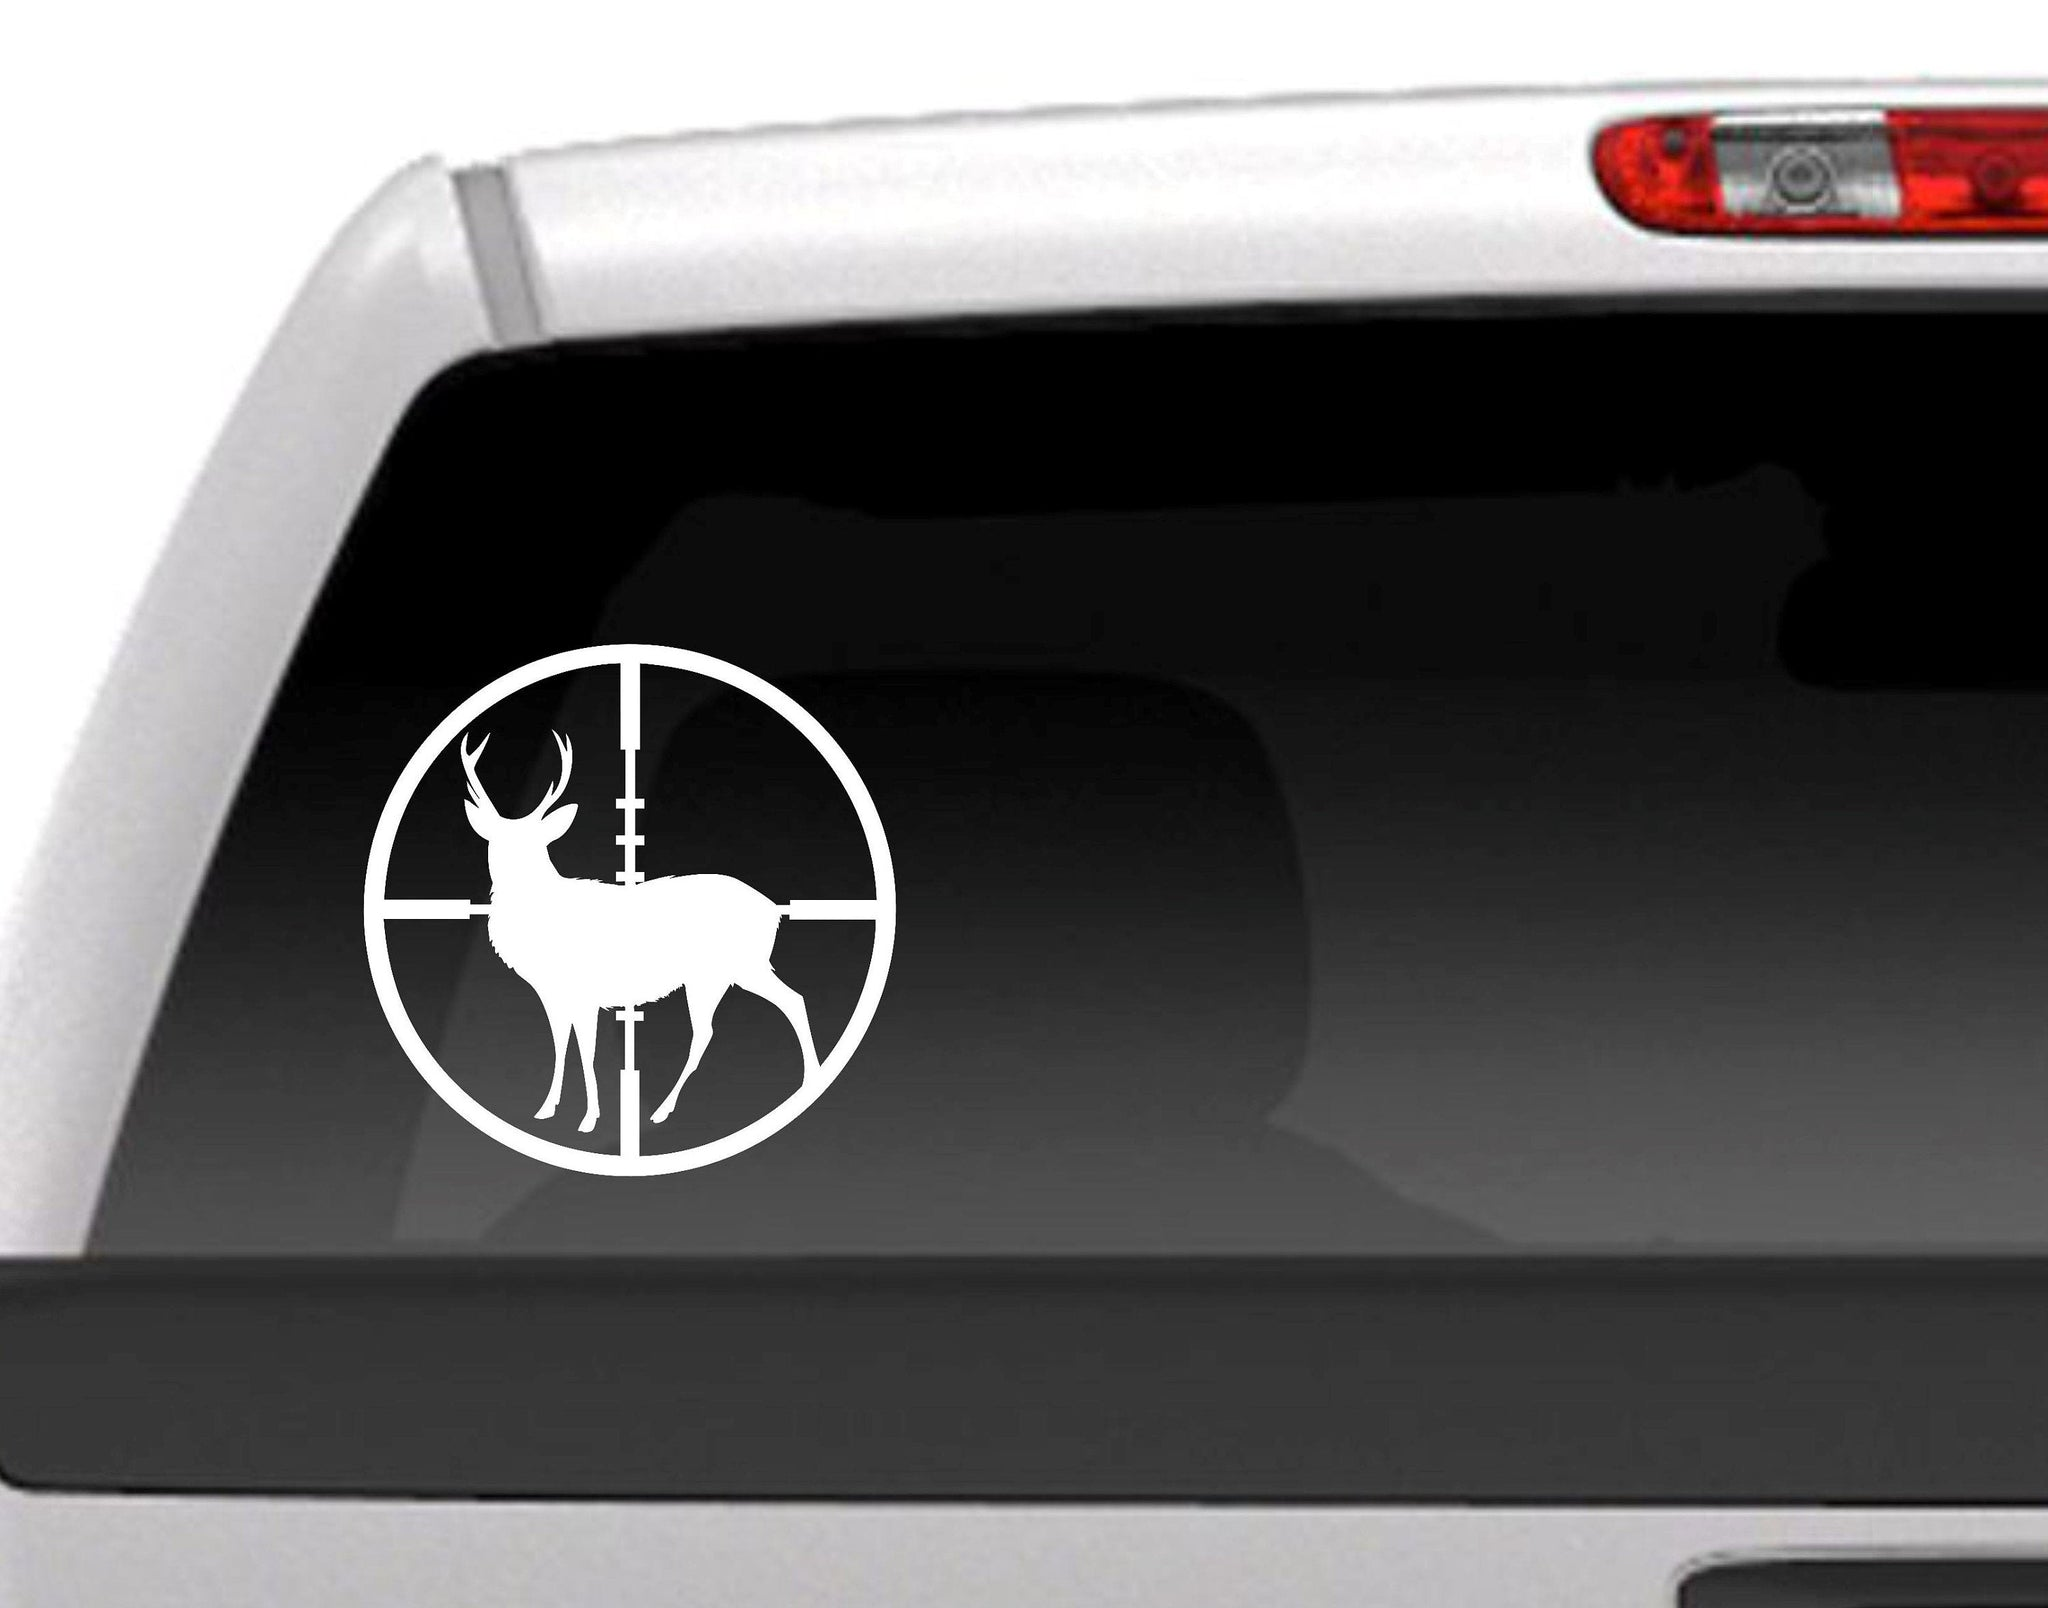 DeerTarget Buck Hunting Rifle Crosshairs Vinyl Decal Sticker